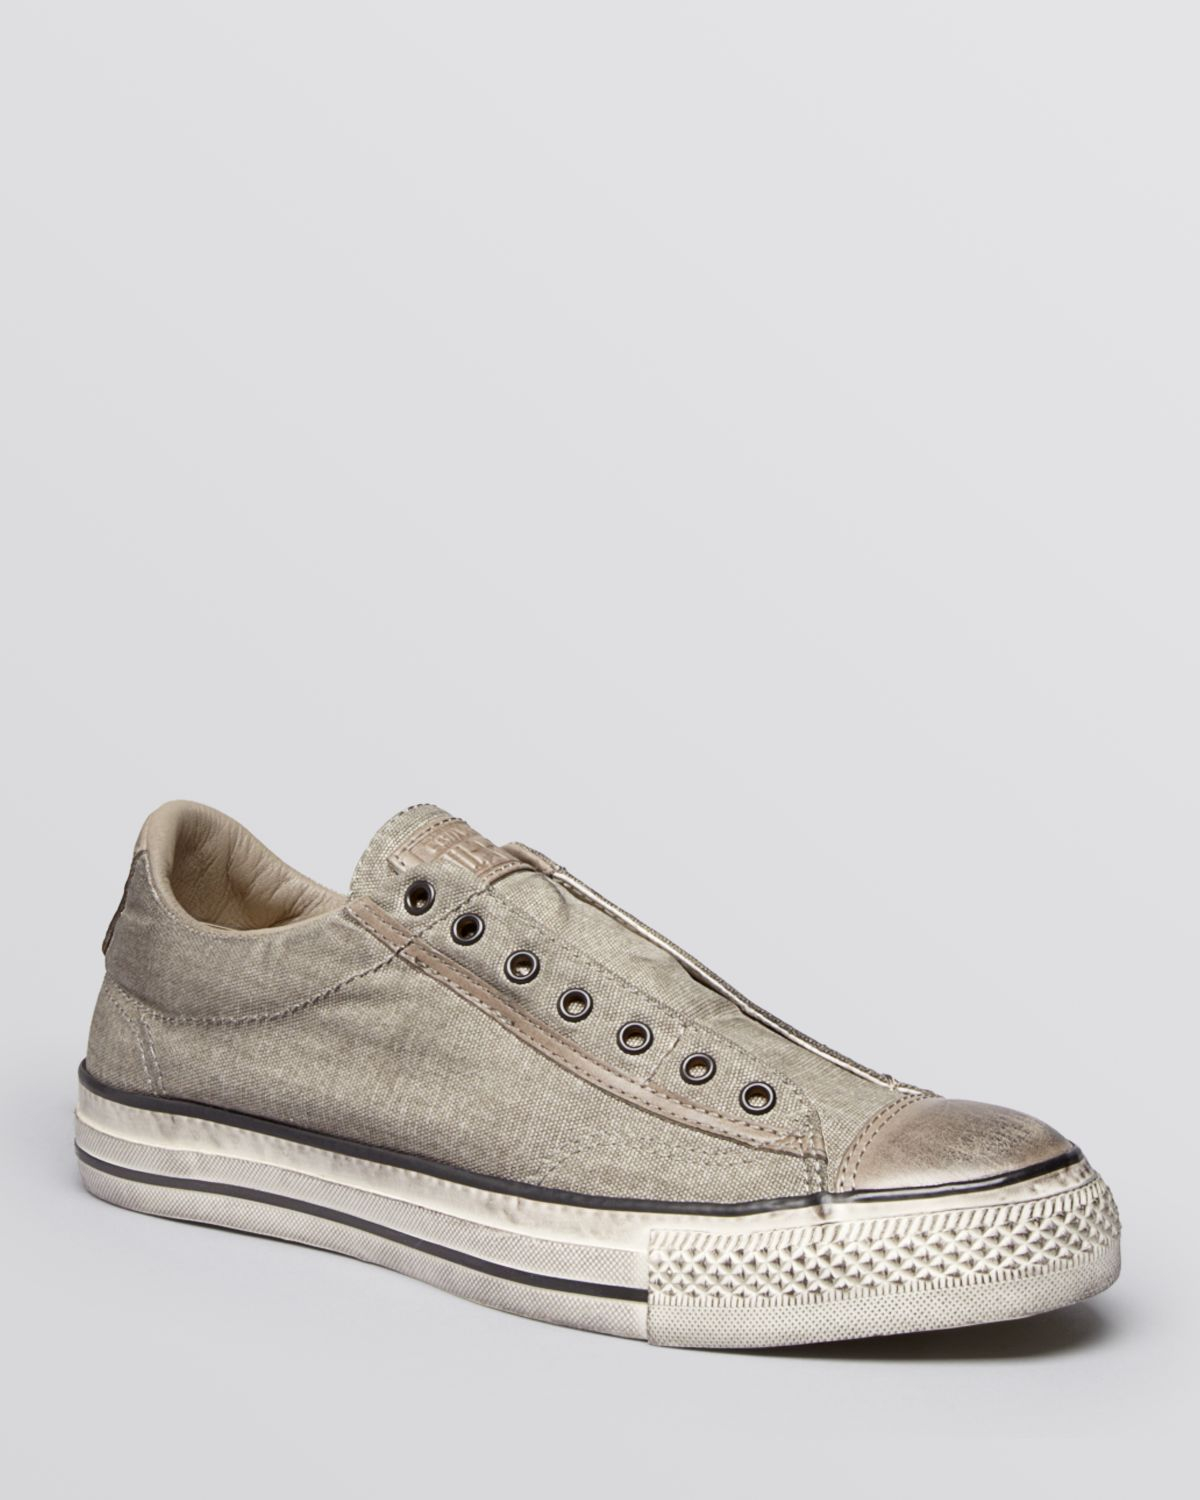 Converse X John Varvatos Shoes